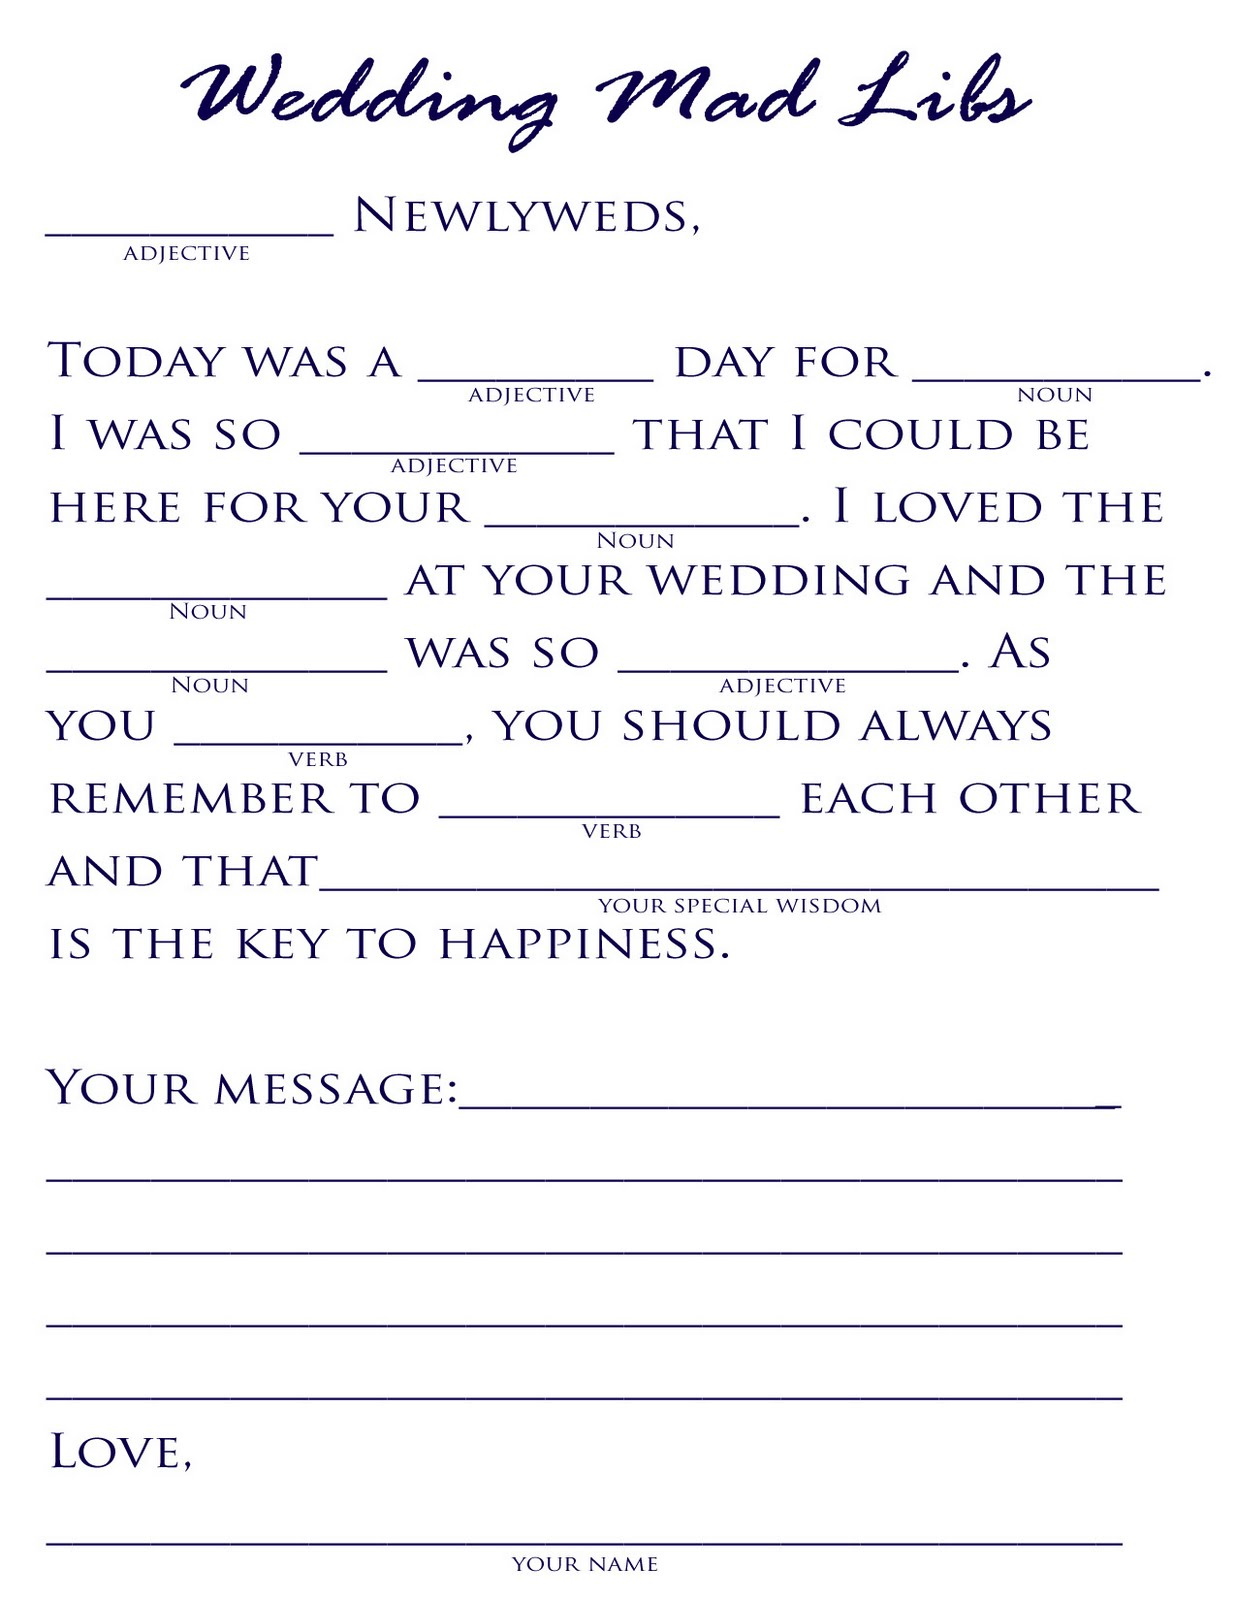 plan-a-pretty-wedding: Wedding Mad Libs